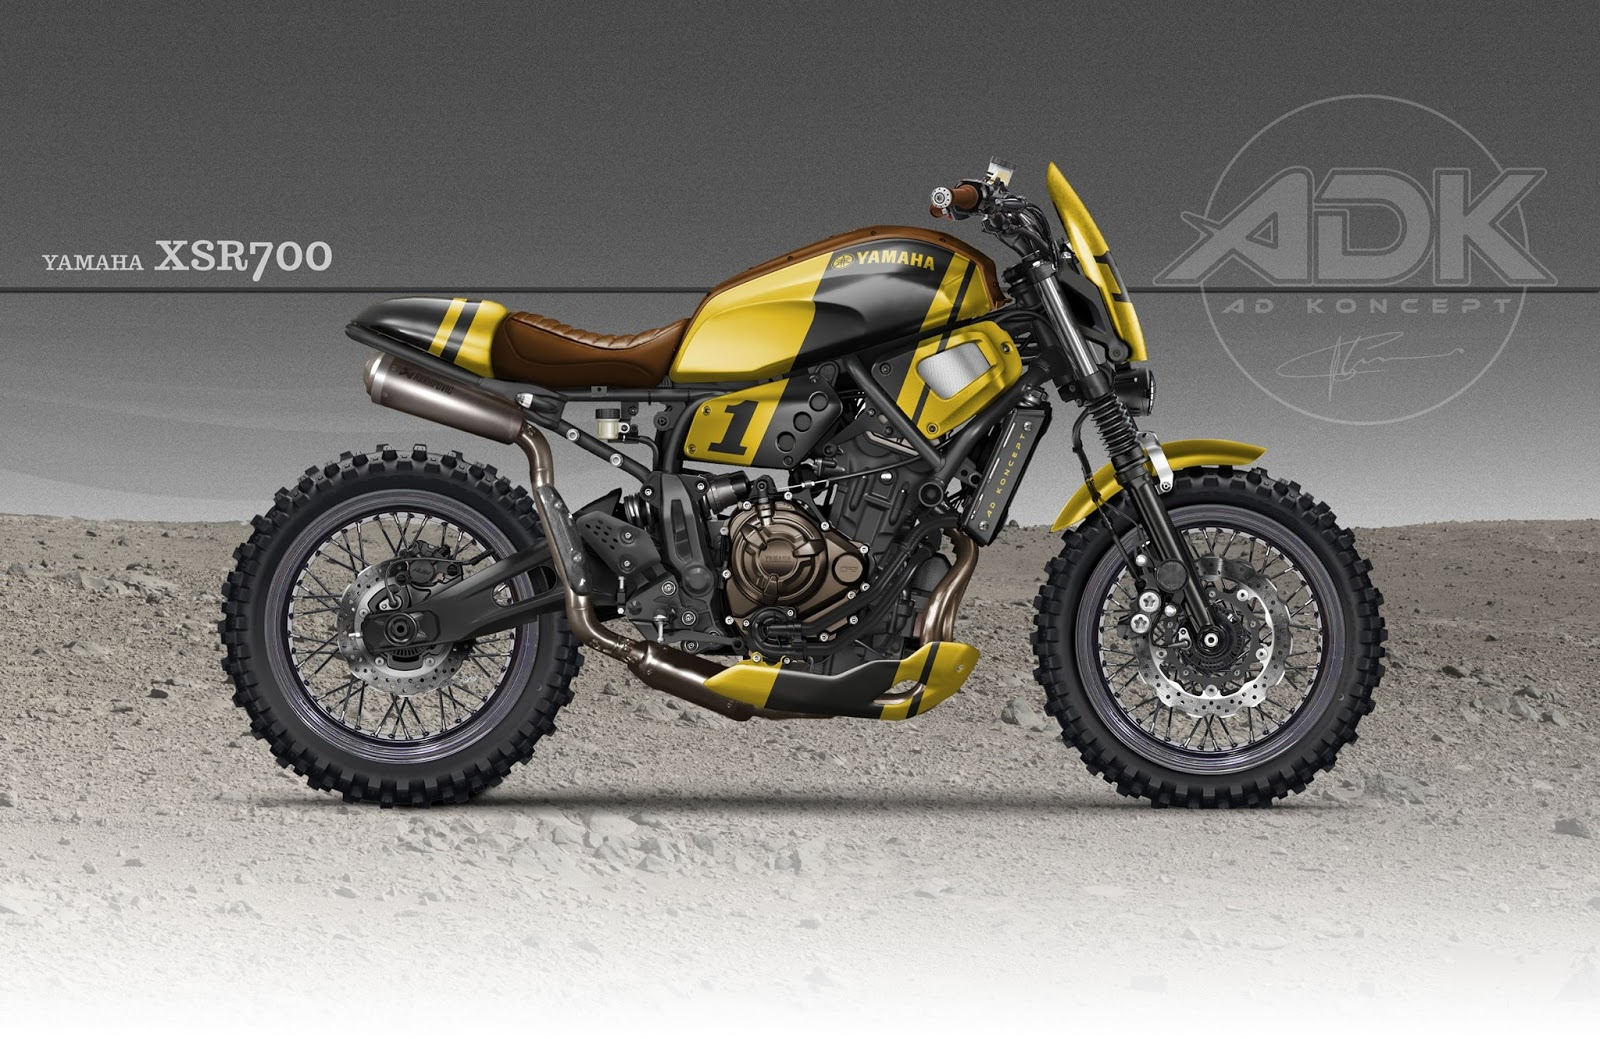 adk xsr 700 scrambler. Black Bedroom Furniture Sets. Home Design Ideas